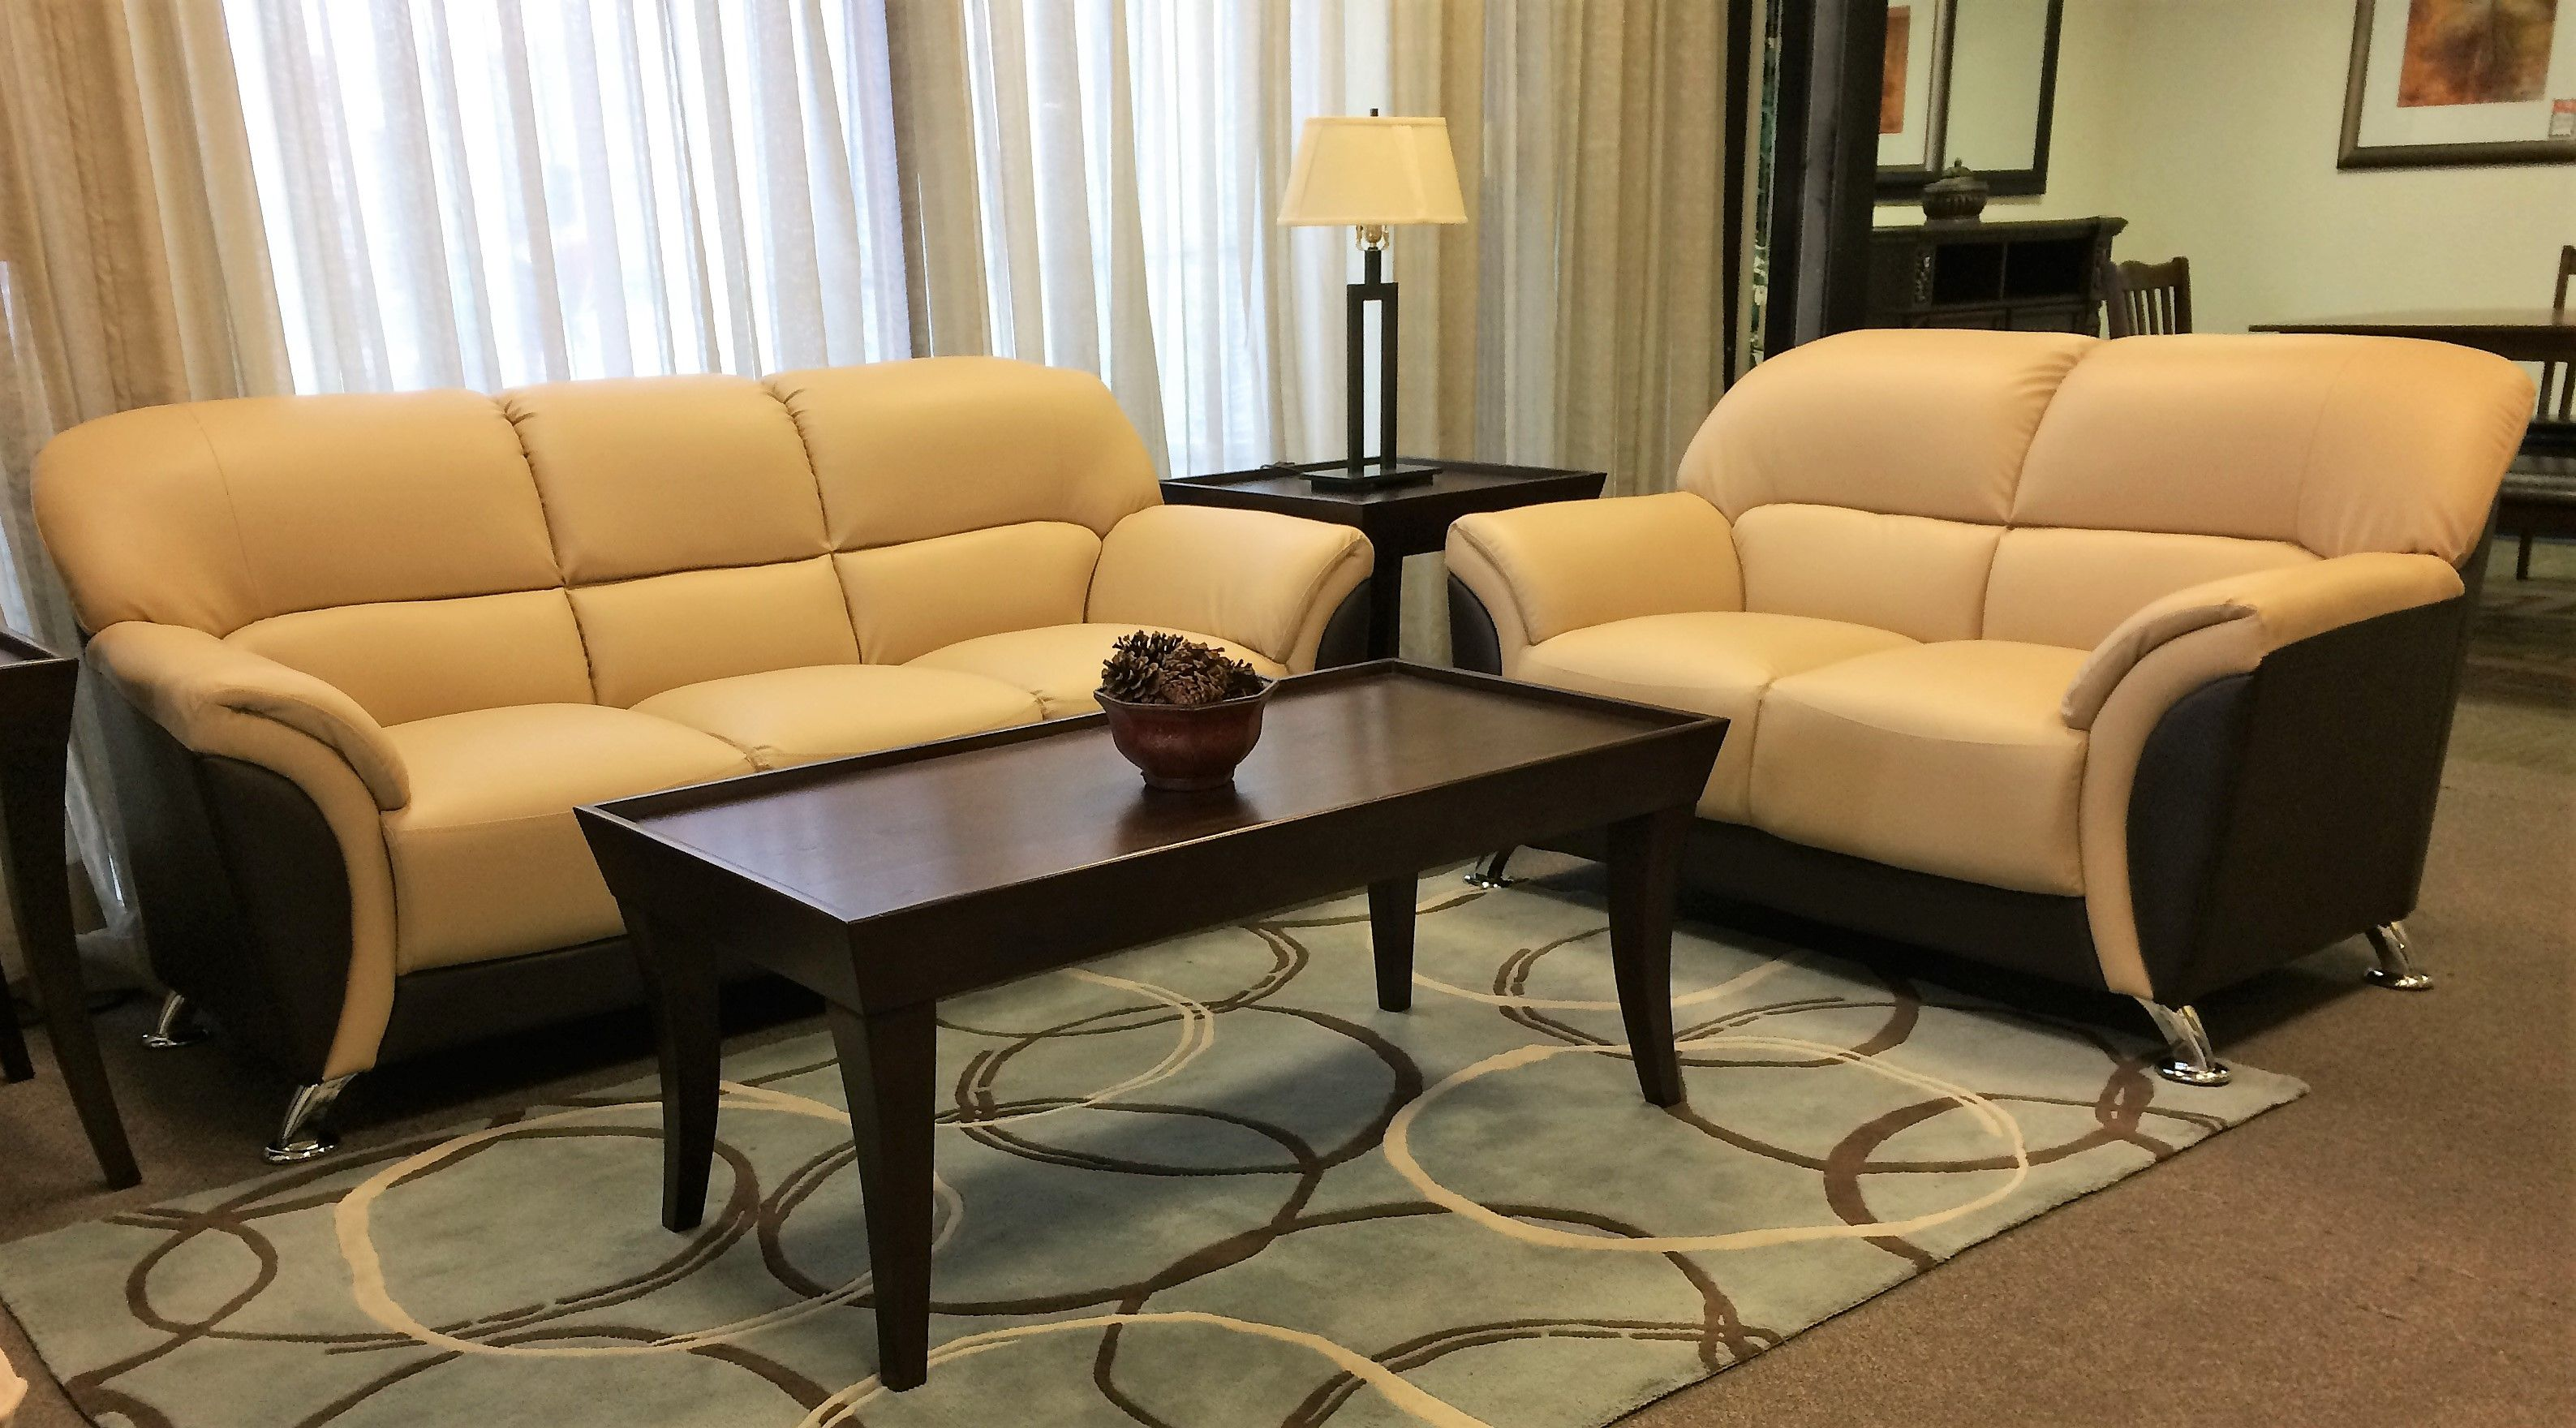 THE LIQUIDATORS New furniture contemporary design e and